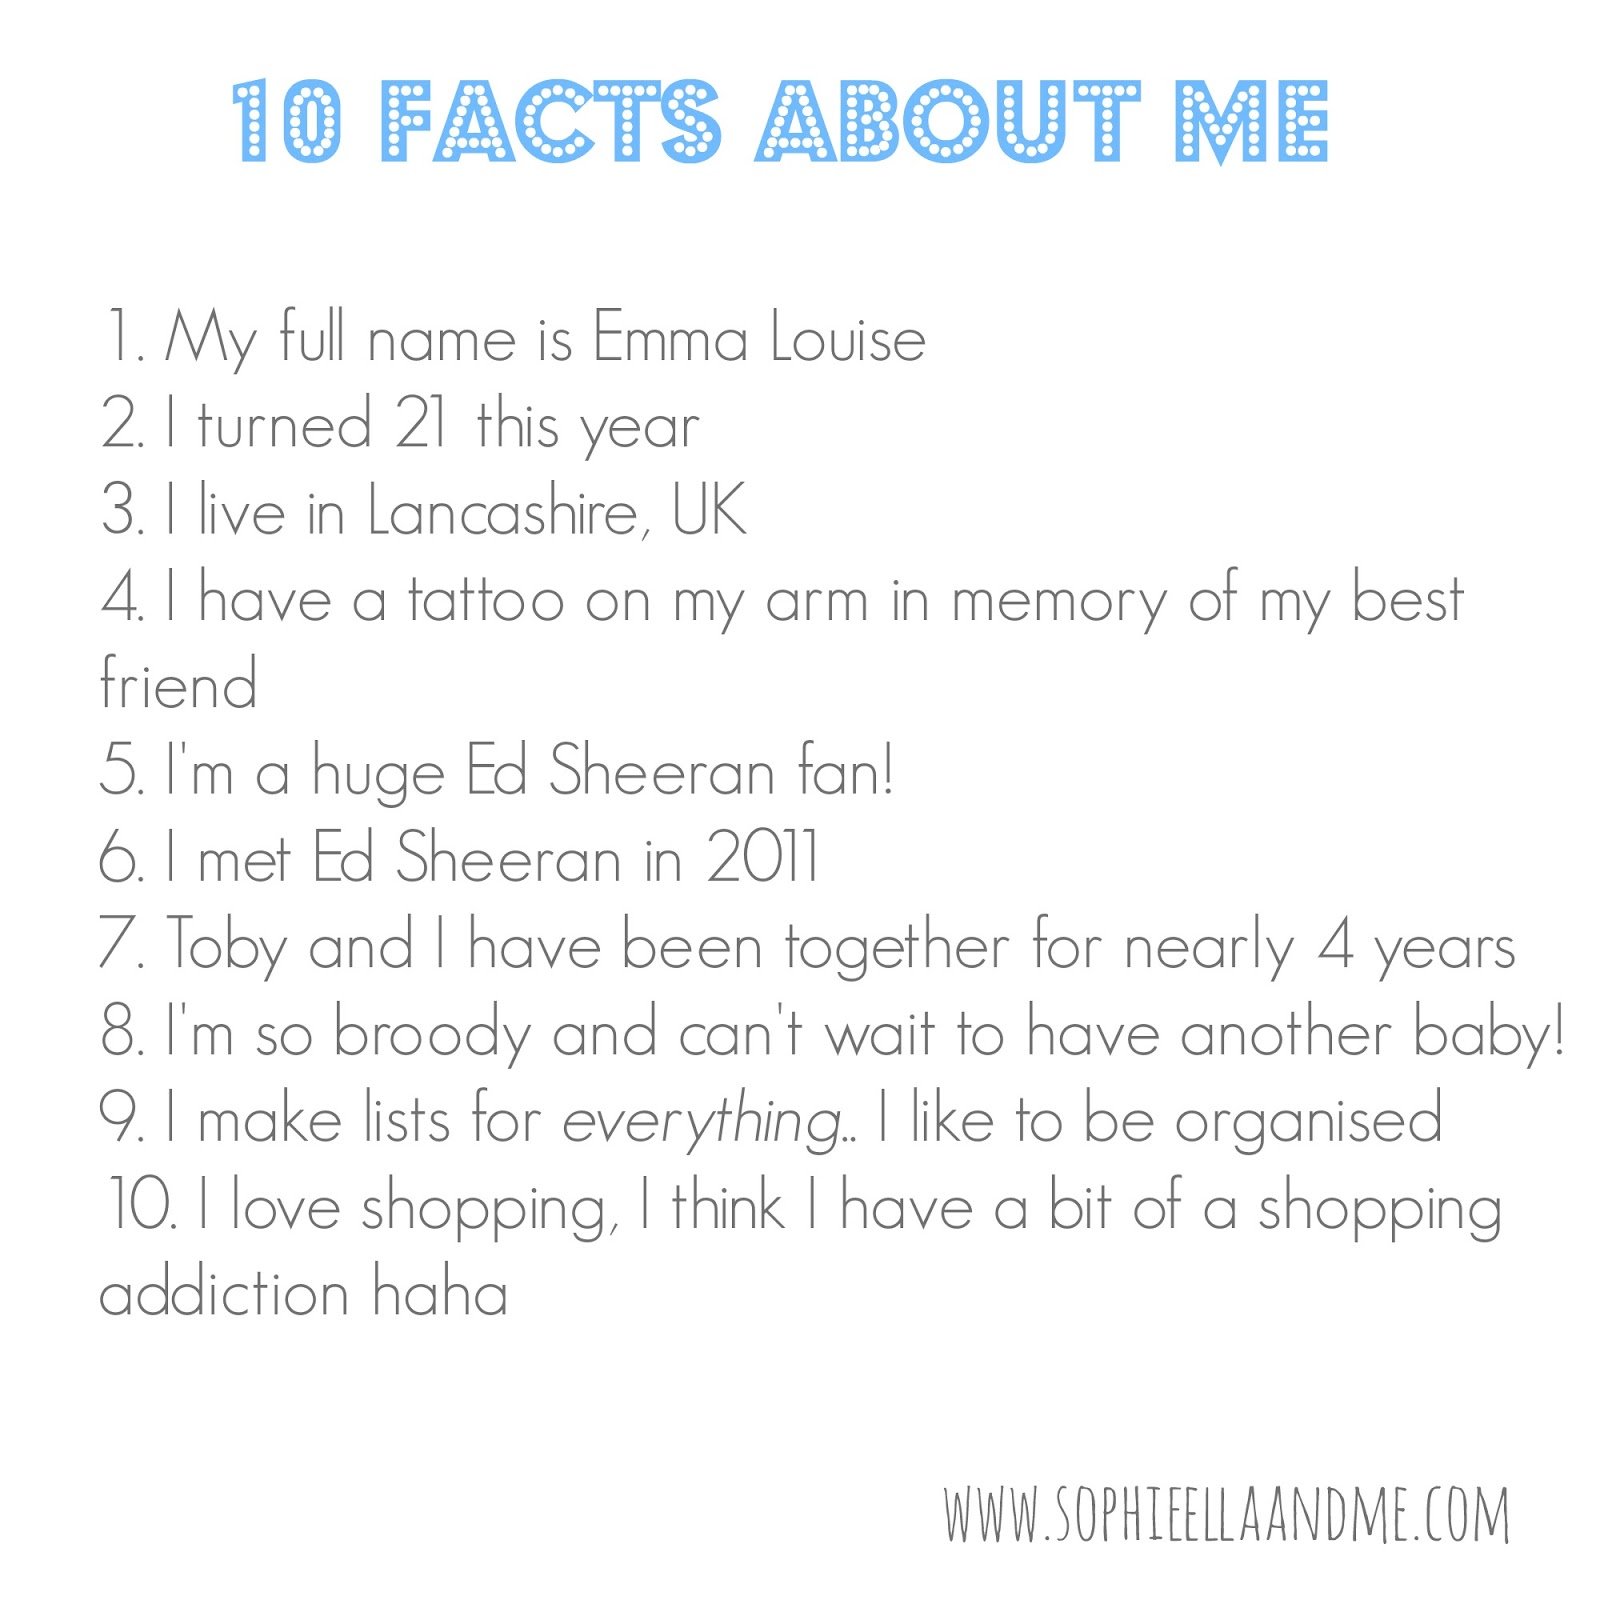 10 Facts About Me